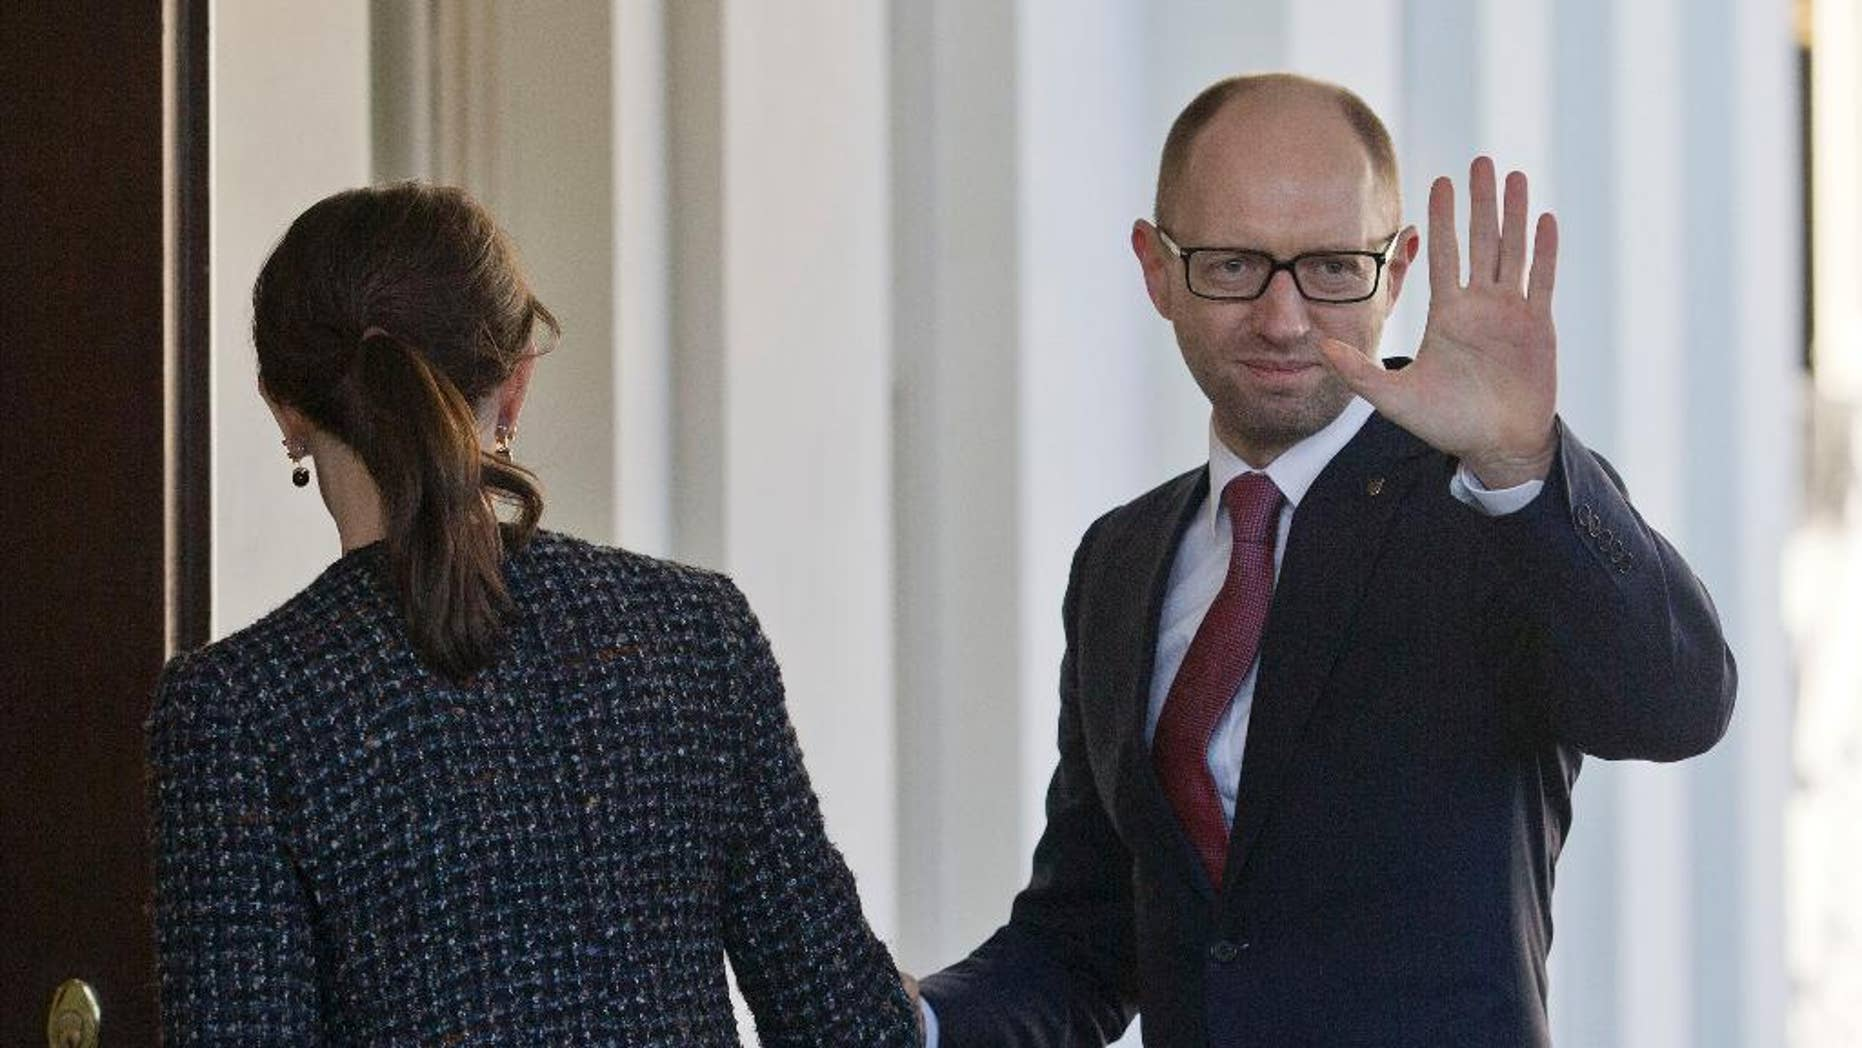 CORRECTS PHOTOGRAPHER TO PABLO MARTINEZ MONSIVAIS Ukraine Prime Minister Arseniy, right, waves as he is greeted by US acting Chief of Protocol Natalie Jones, left, during his arrival at the White House in Washington, Thursday, March 13, 2014. Arseniy is meeting with Vice President Joe Biden before traveling to New York to visit the United Nations. (AP Photo/Pablo Martinez Monsivais)